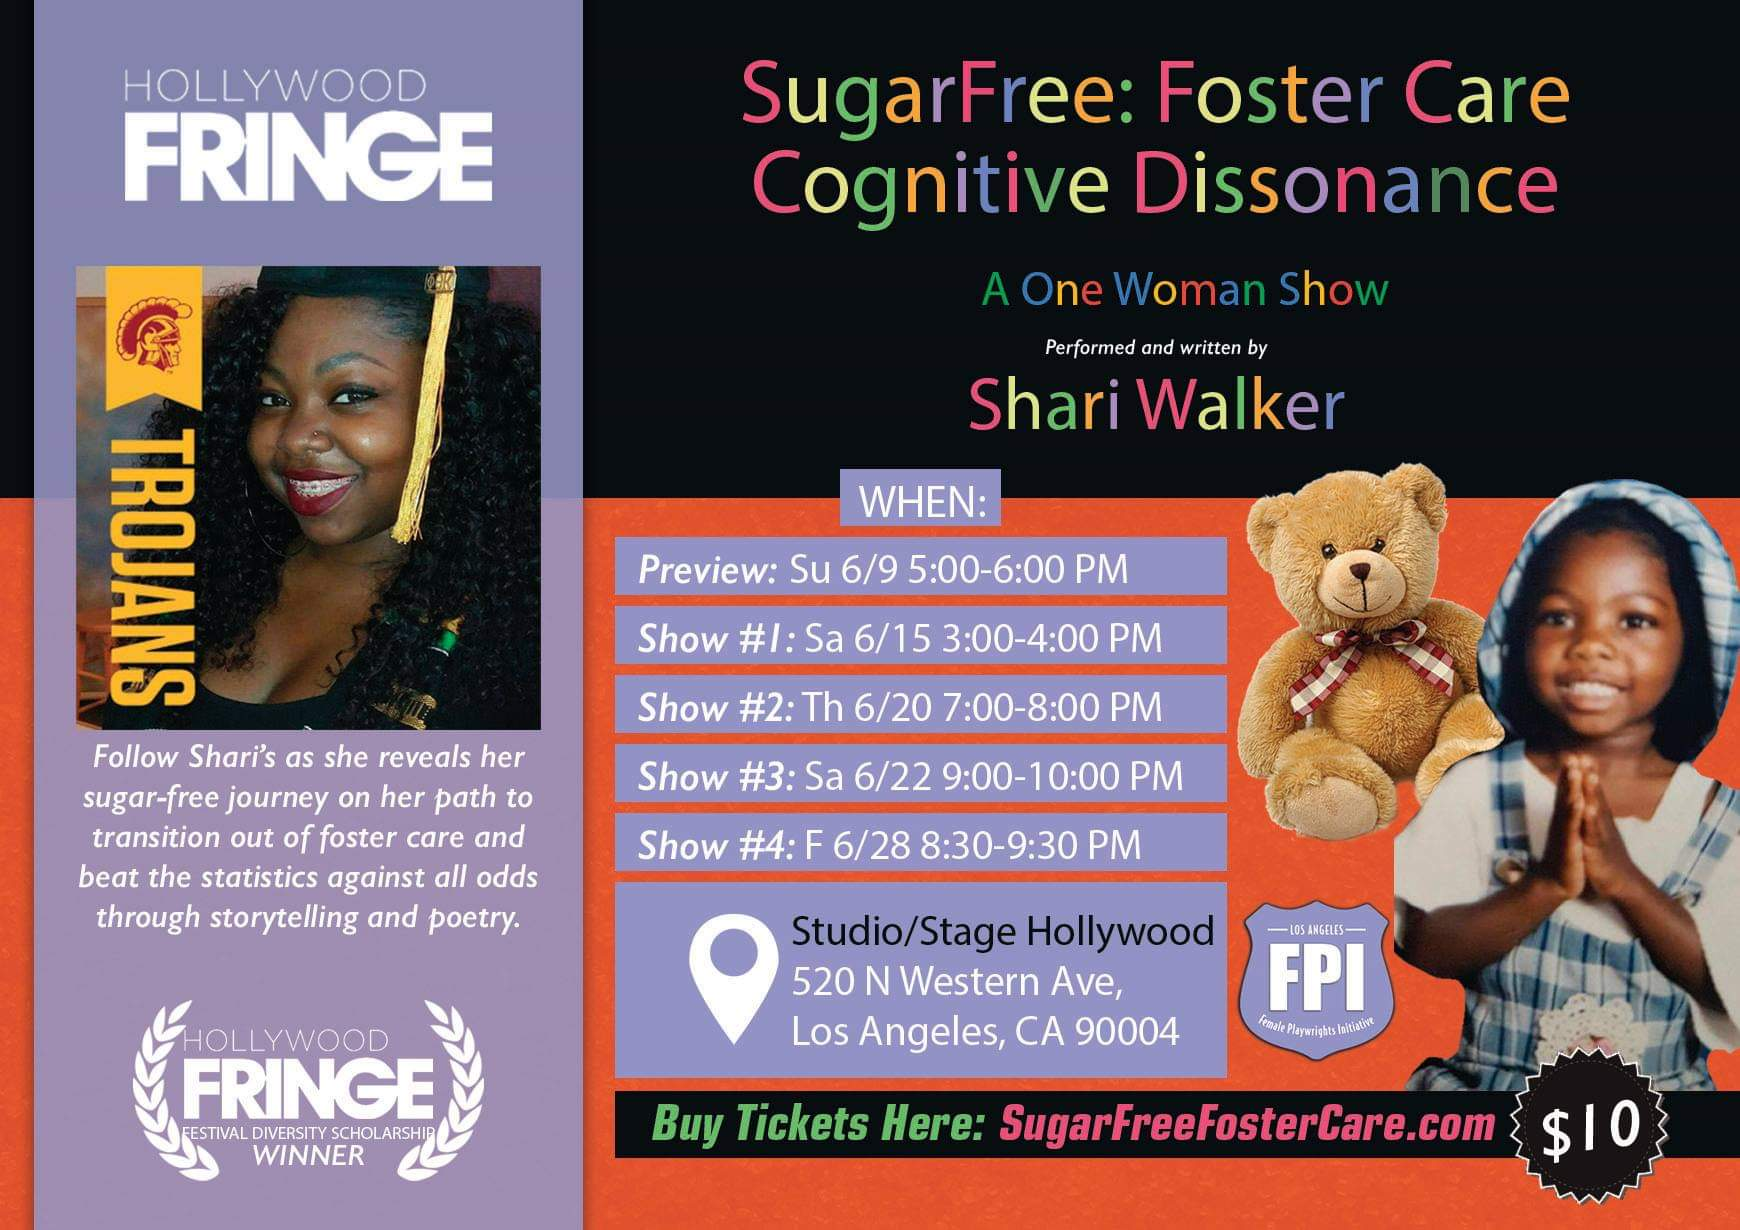 Sugarfree:Foster CareCognitive Dissonance - Get to Know the Play and One-Woman Playwright, Producer and Actress Questions & Answers